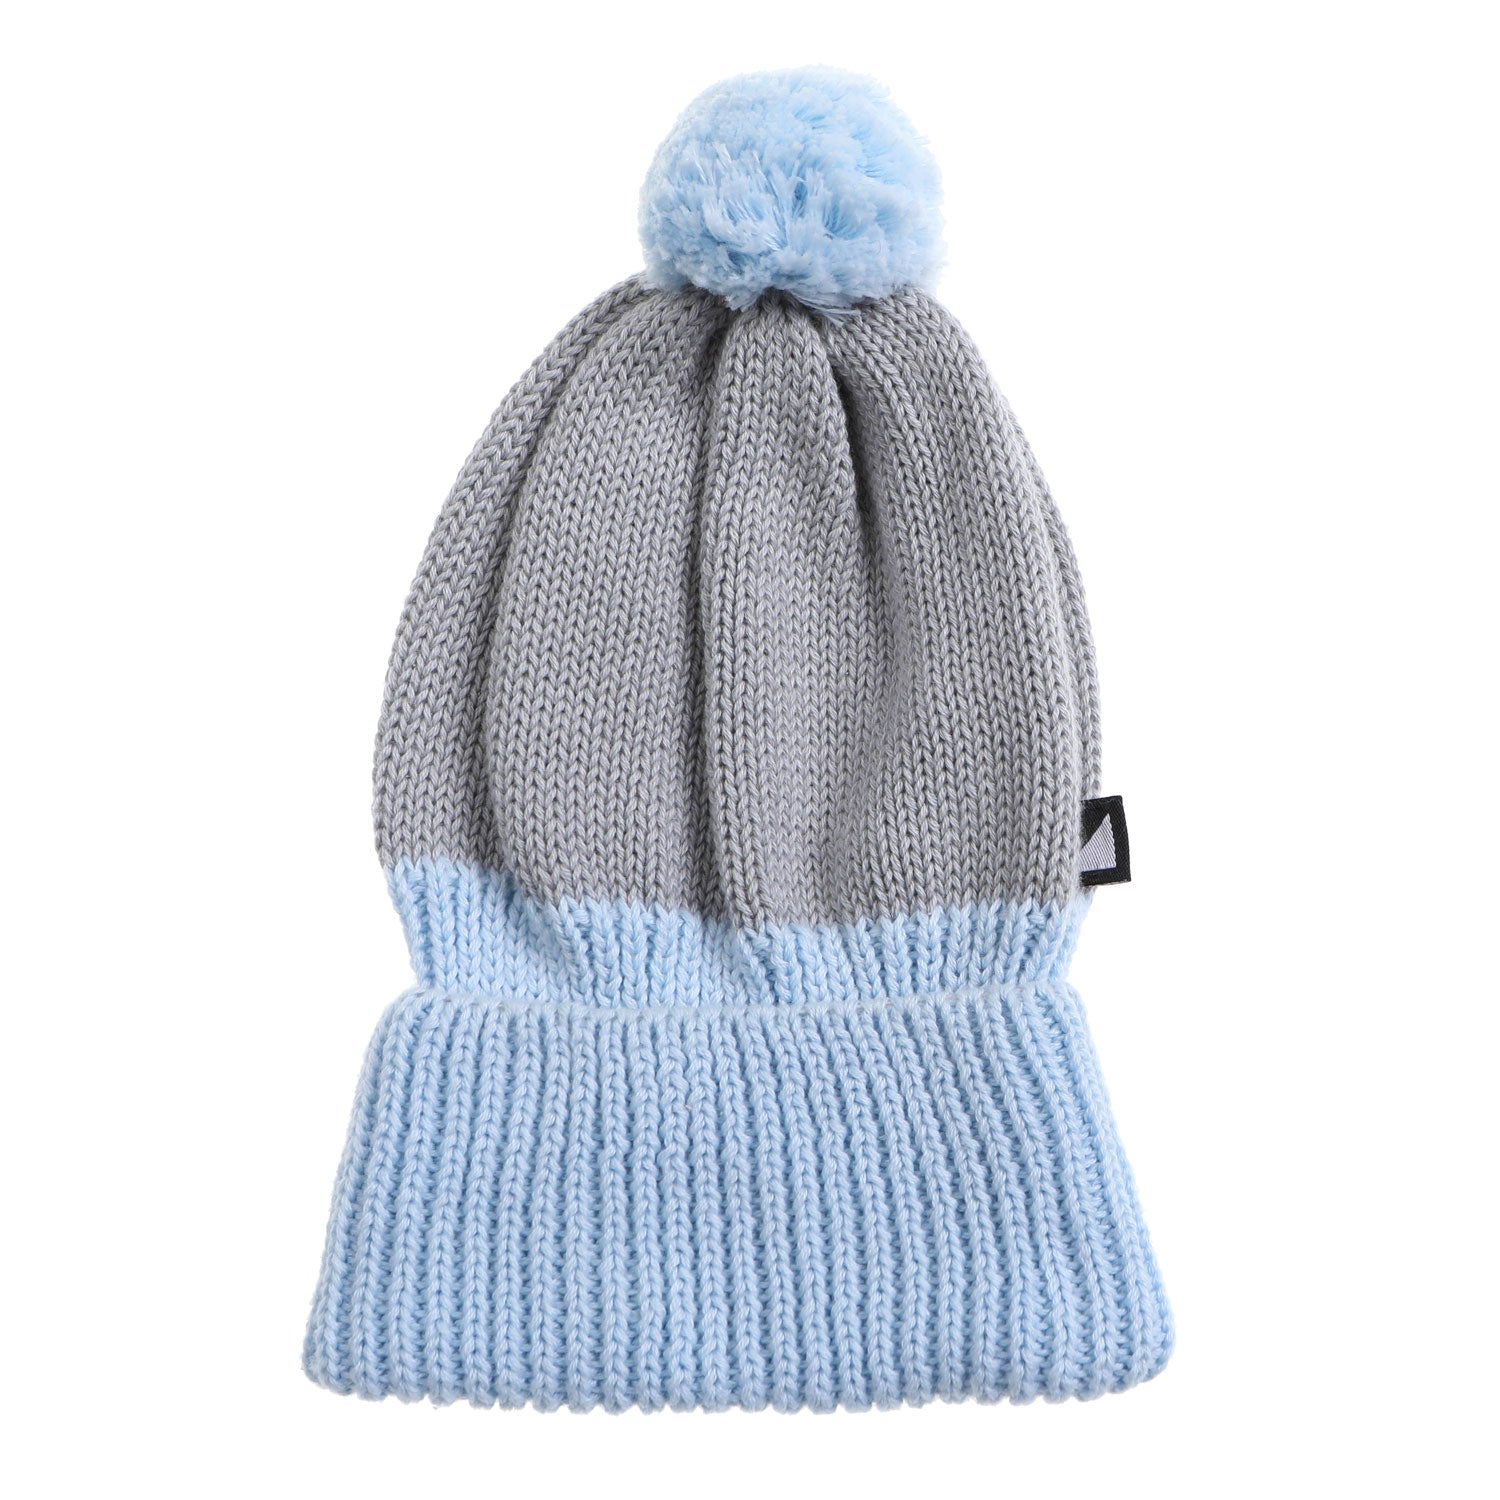 Glacier Blue/Grey Chunky Knitted Baby Beanie